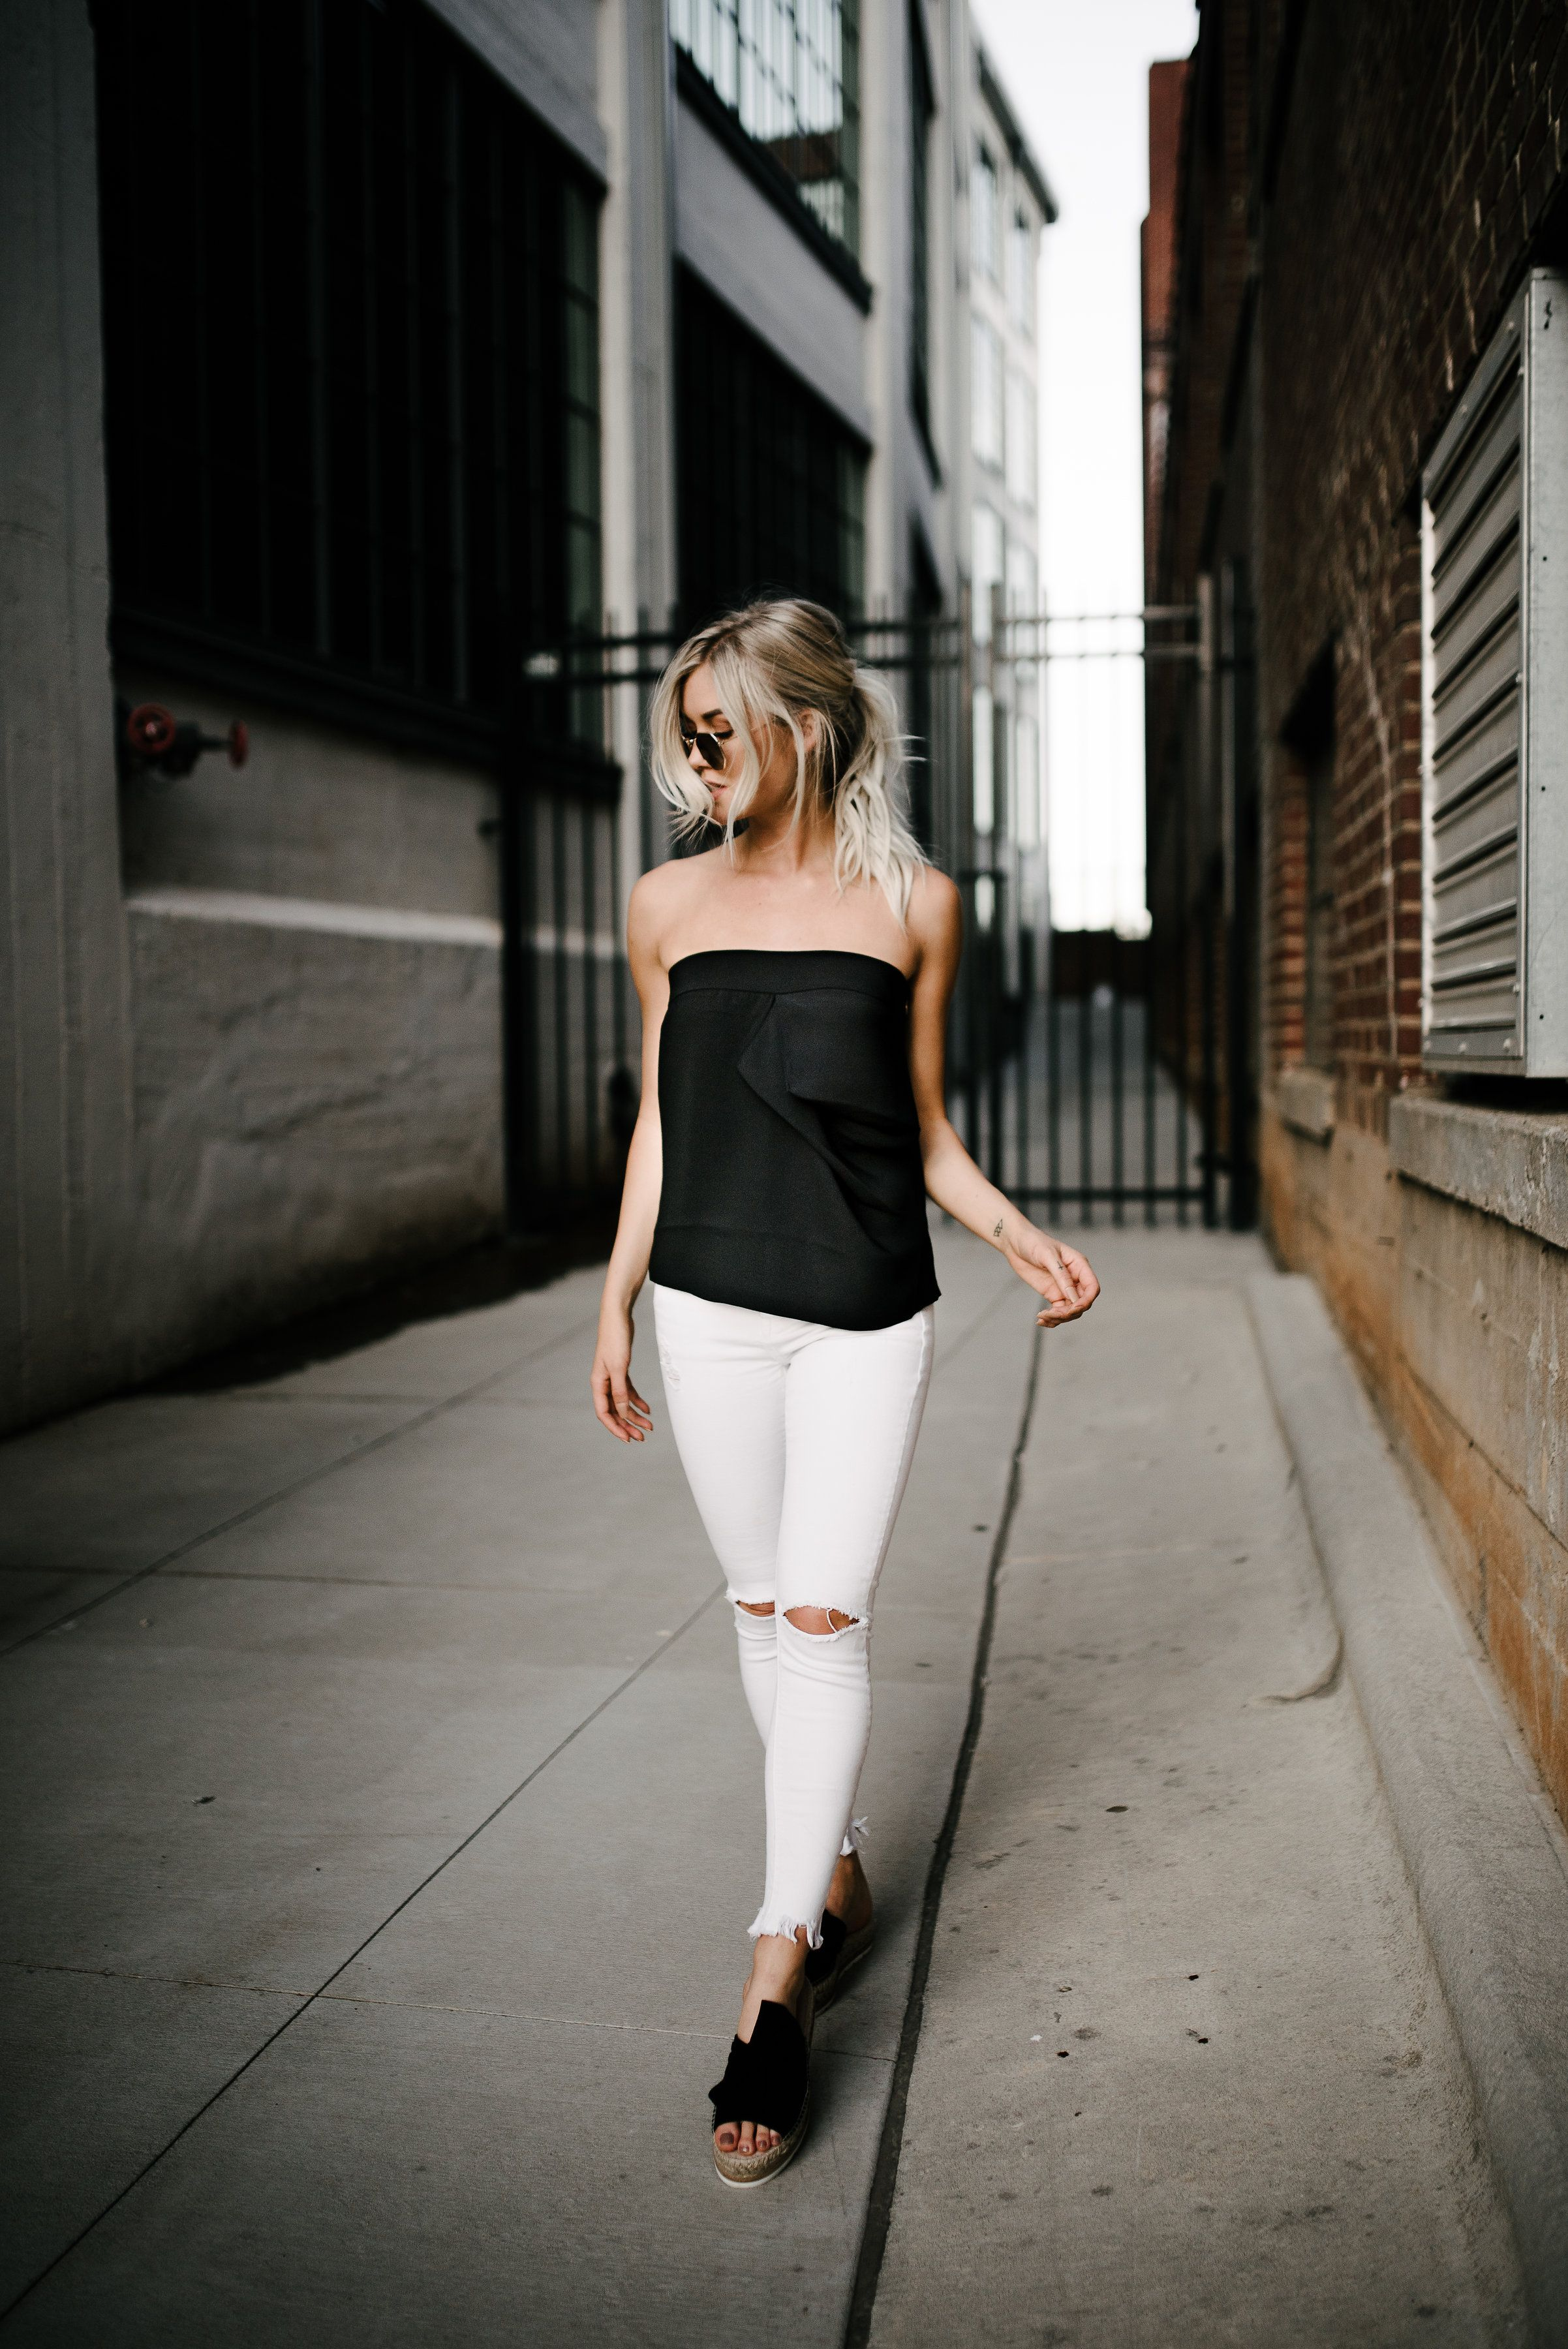 Anna Cate Collection Skylar// street style draped to